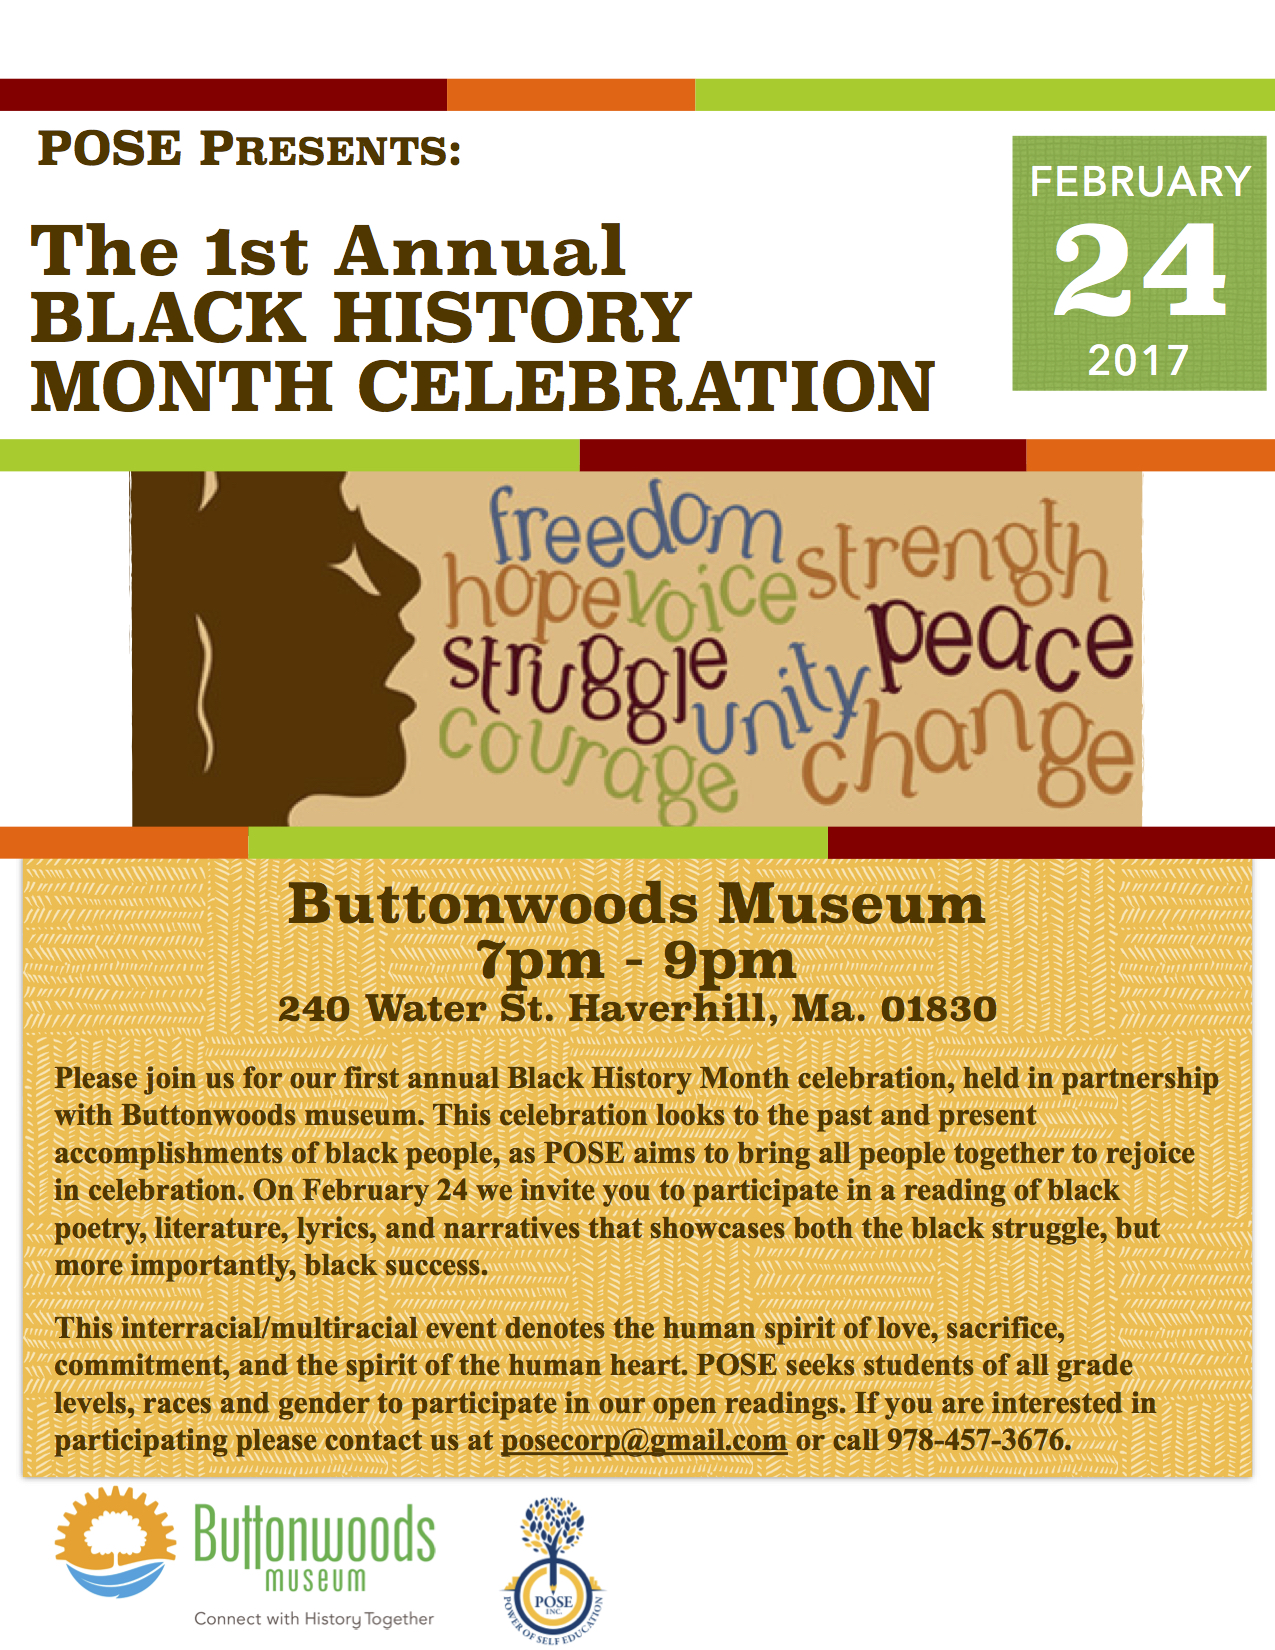 1st Annual Black History Month Celebration At Buttonwoods